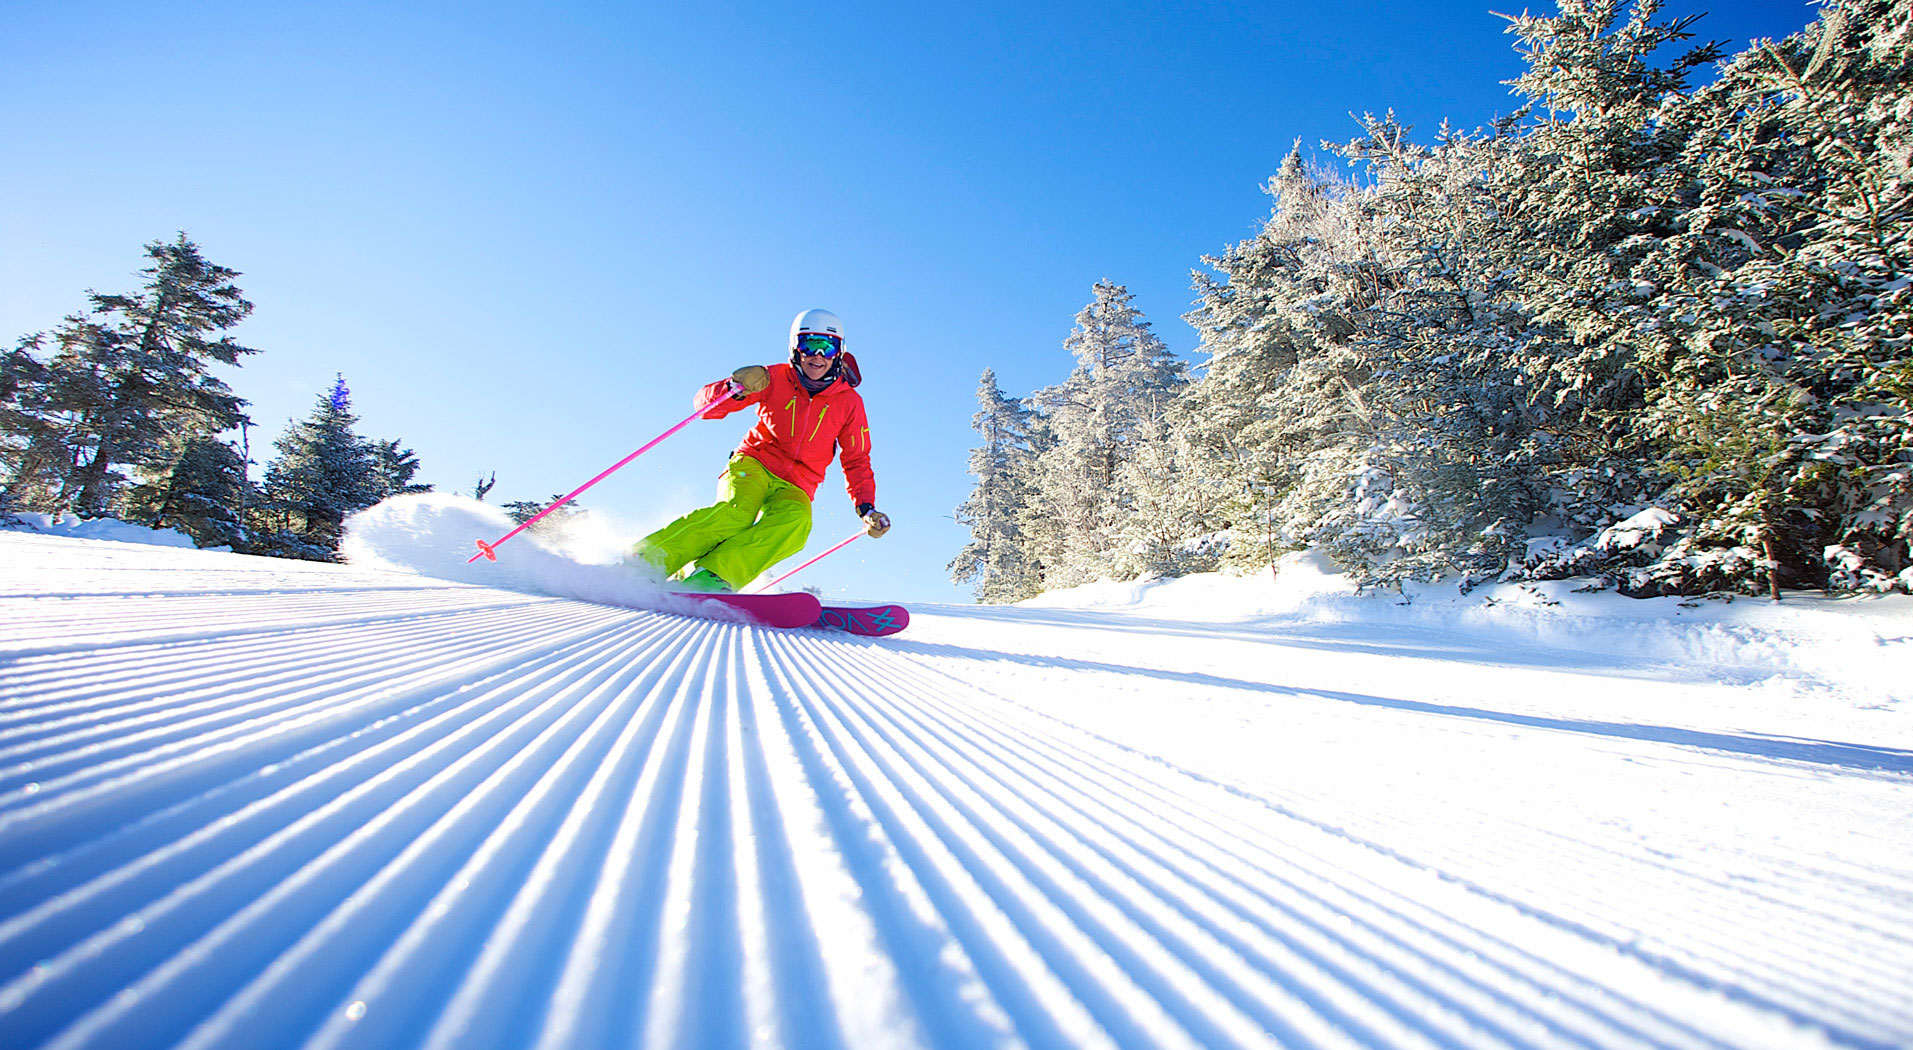 Female skier smiling on the hill with snowy trees and perfect snow